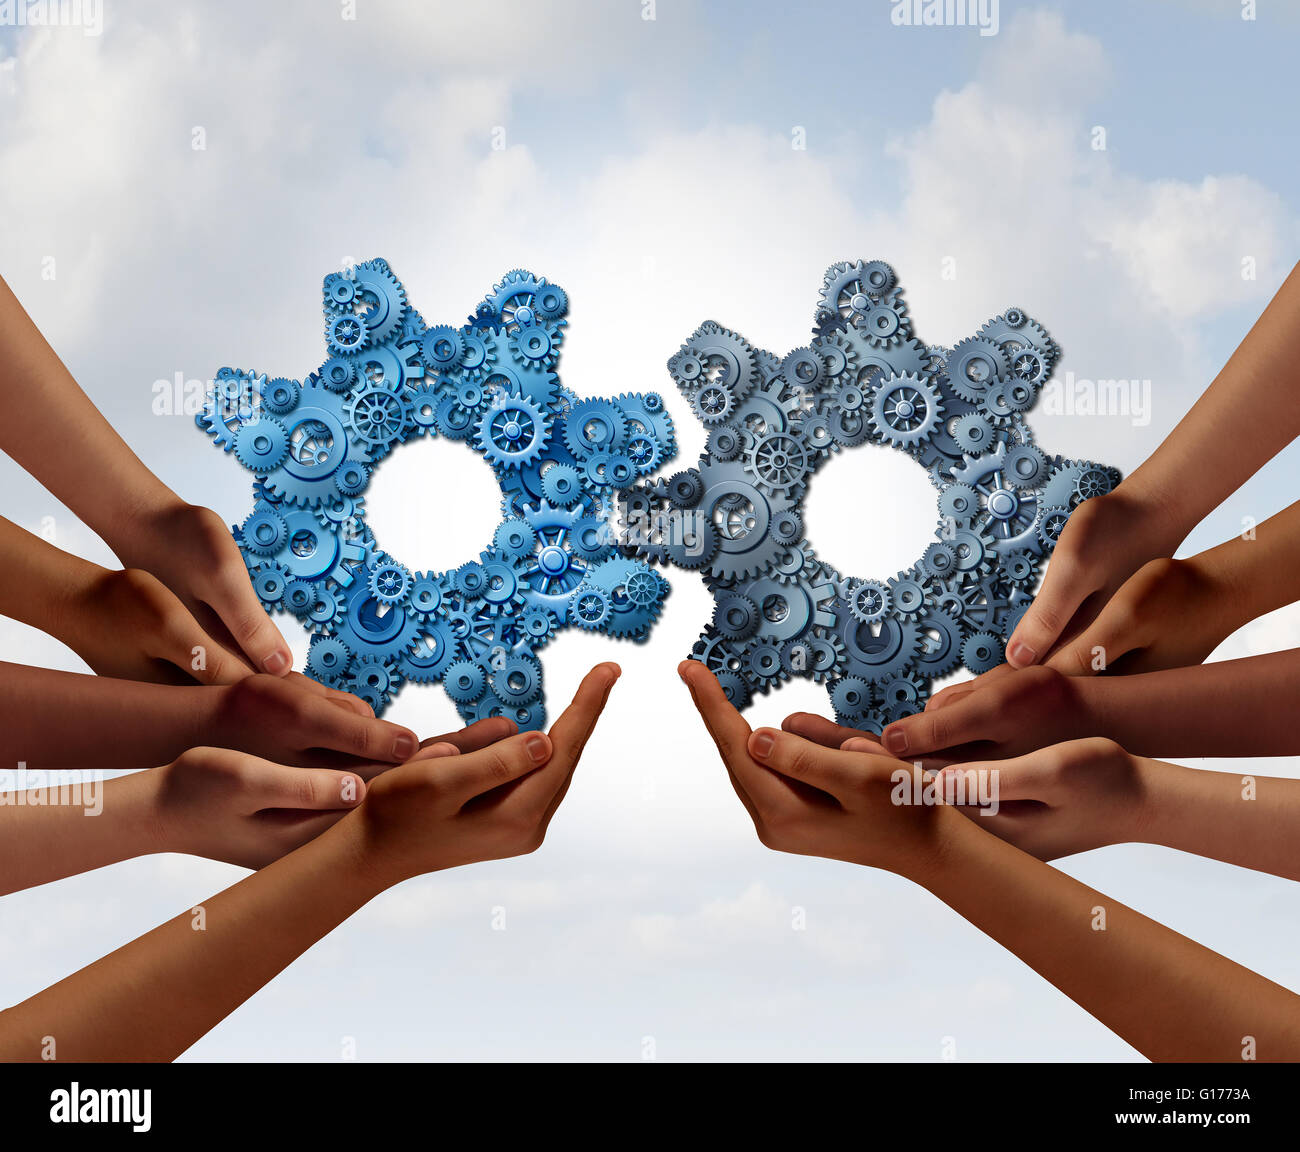 Corporate teamwork and business global cooperation concept as two groups of diverse people joining together holding - Stock Image